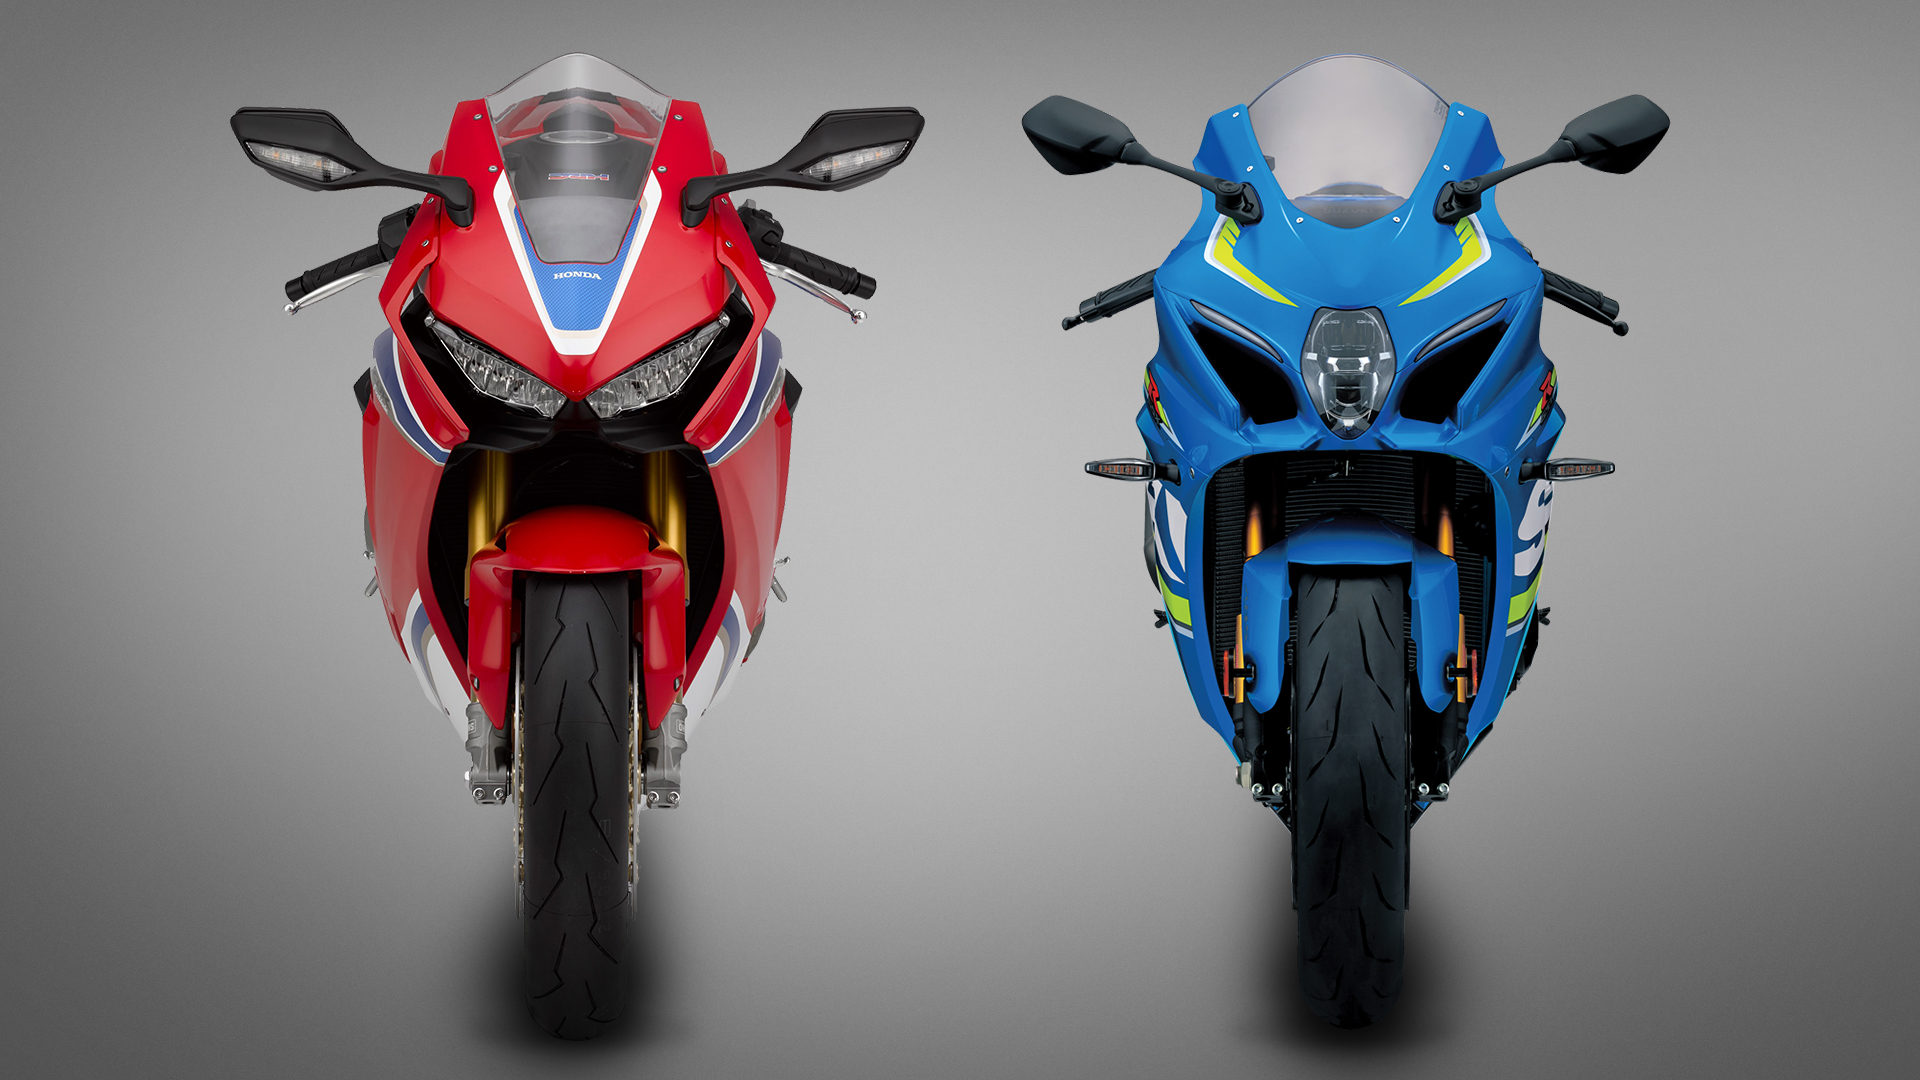 From the front, the flatter lights of the Honda suit its slightly bulkier fairing, whereas the slim Suzuki has a pucker central headlight with running light accents.